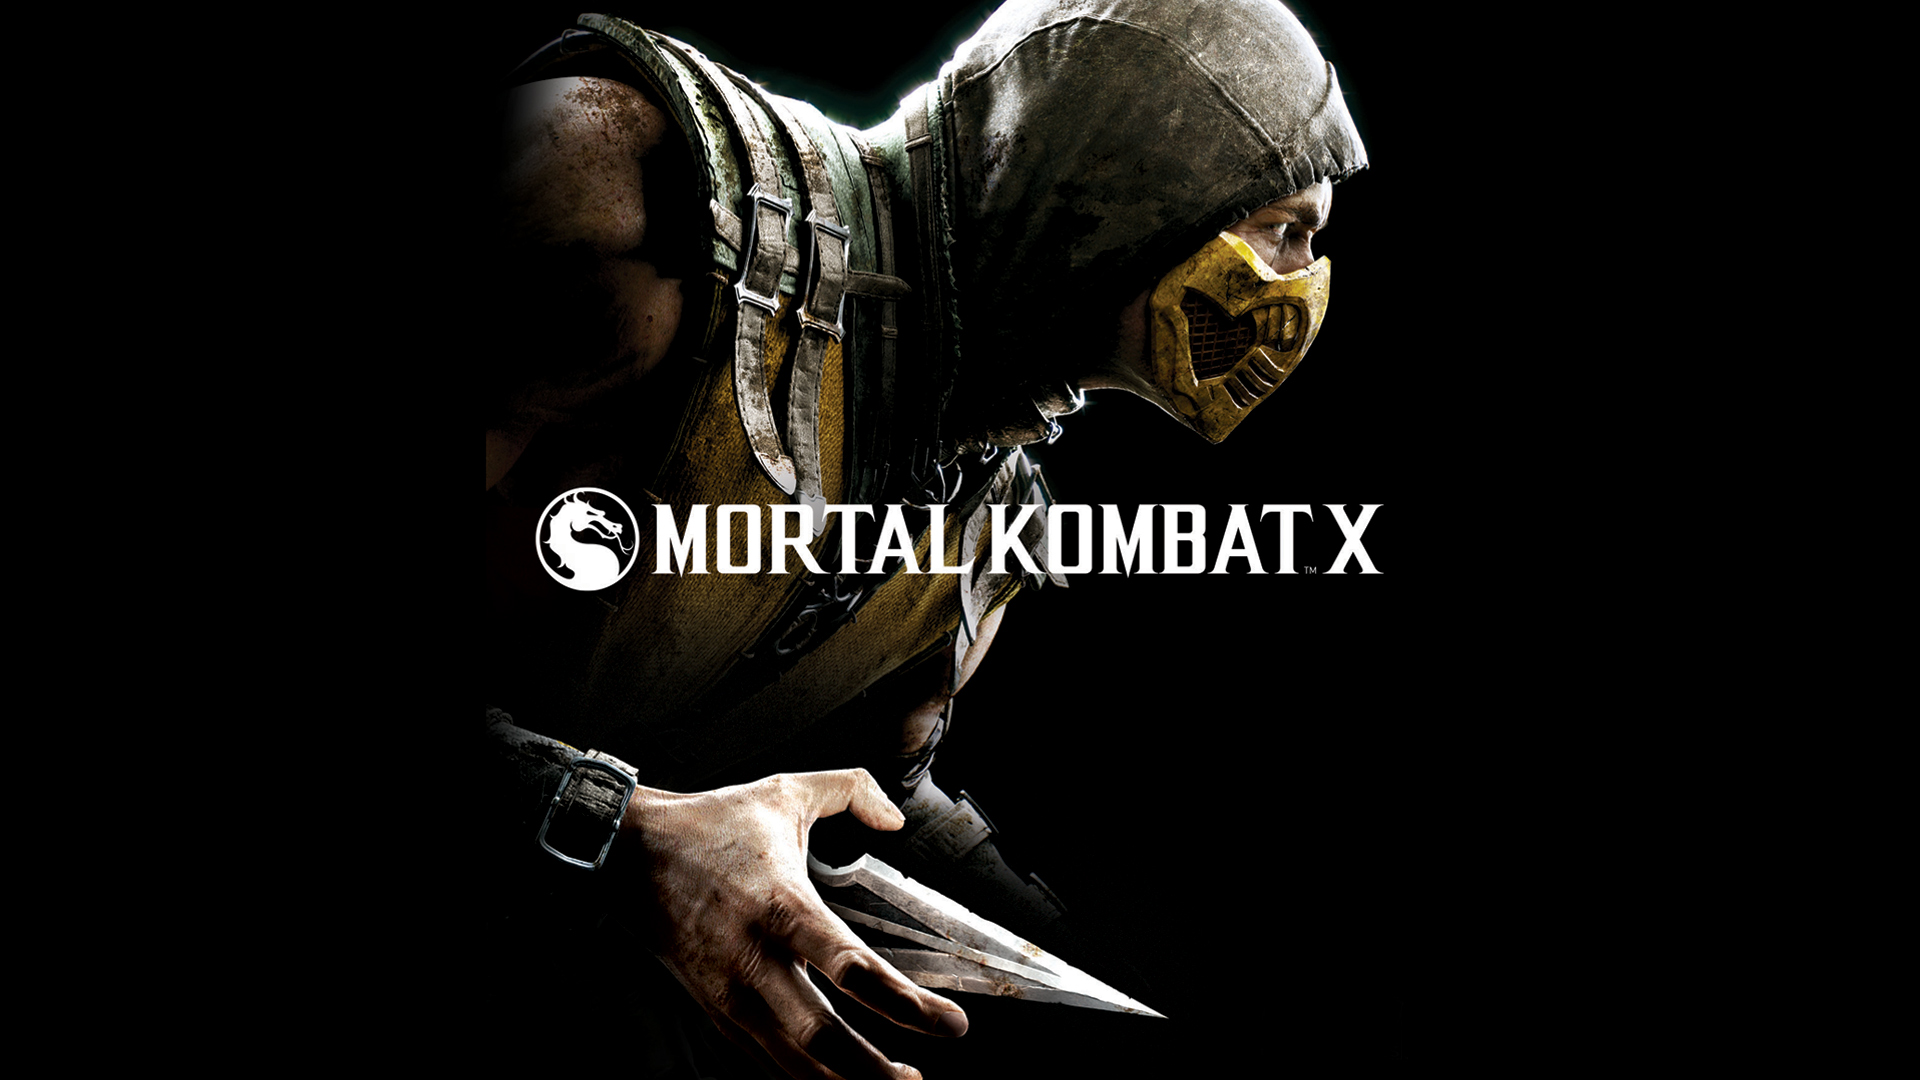 mortal kombat x combat game fighting hd 1920x1080 1080p wallpaper 1920x1080